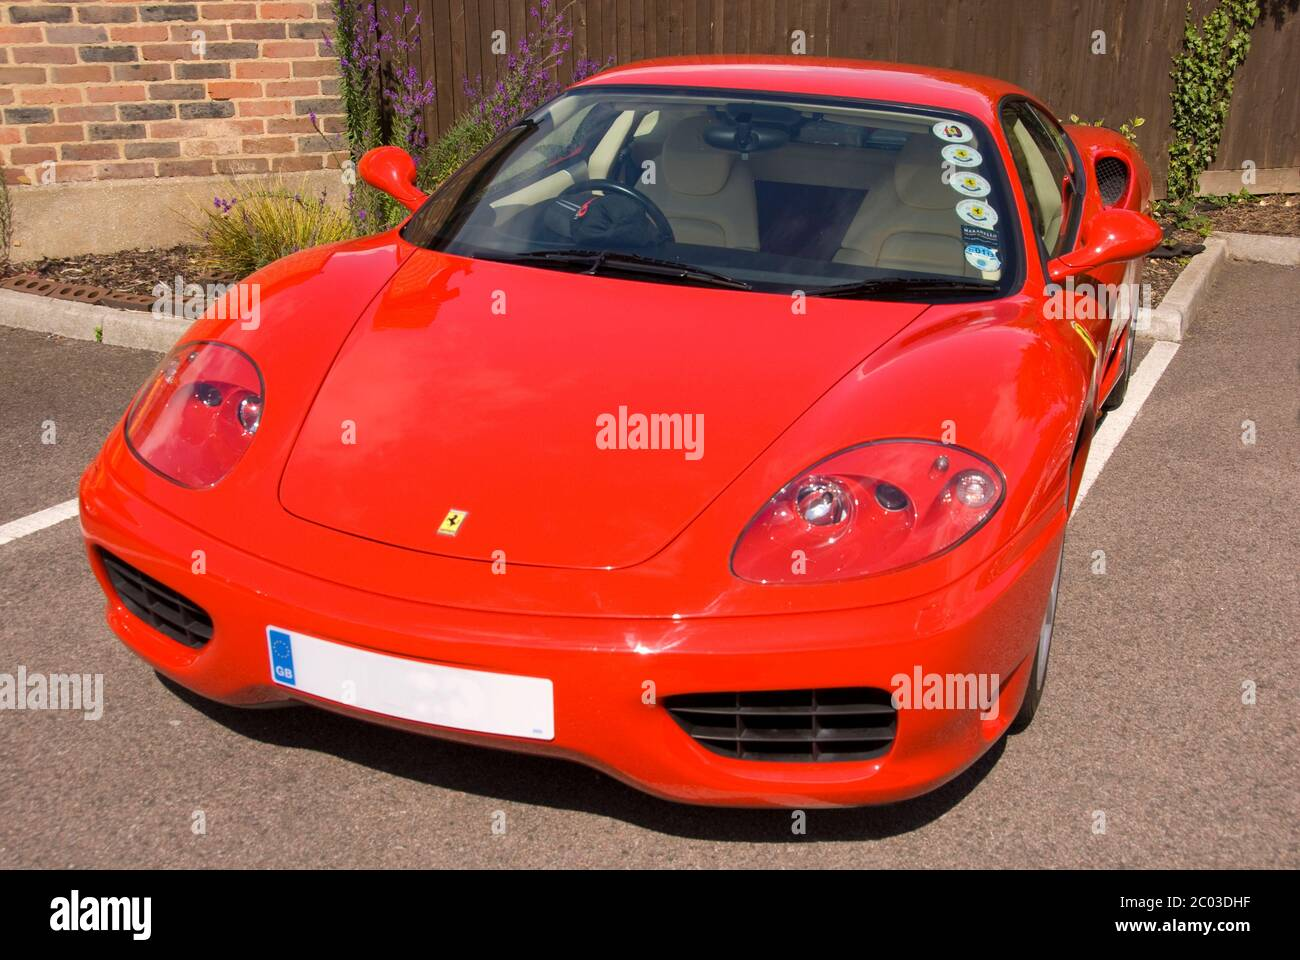 Car Wish High Resolution Stock Photography And Images Alamy